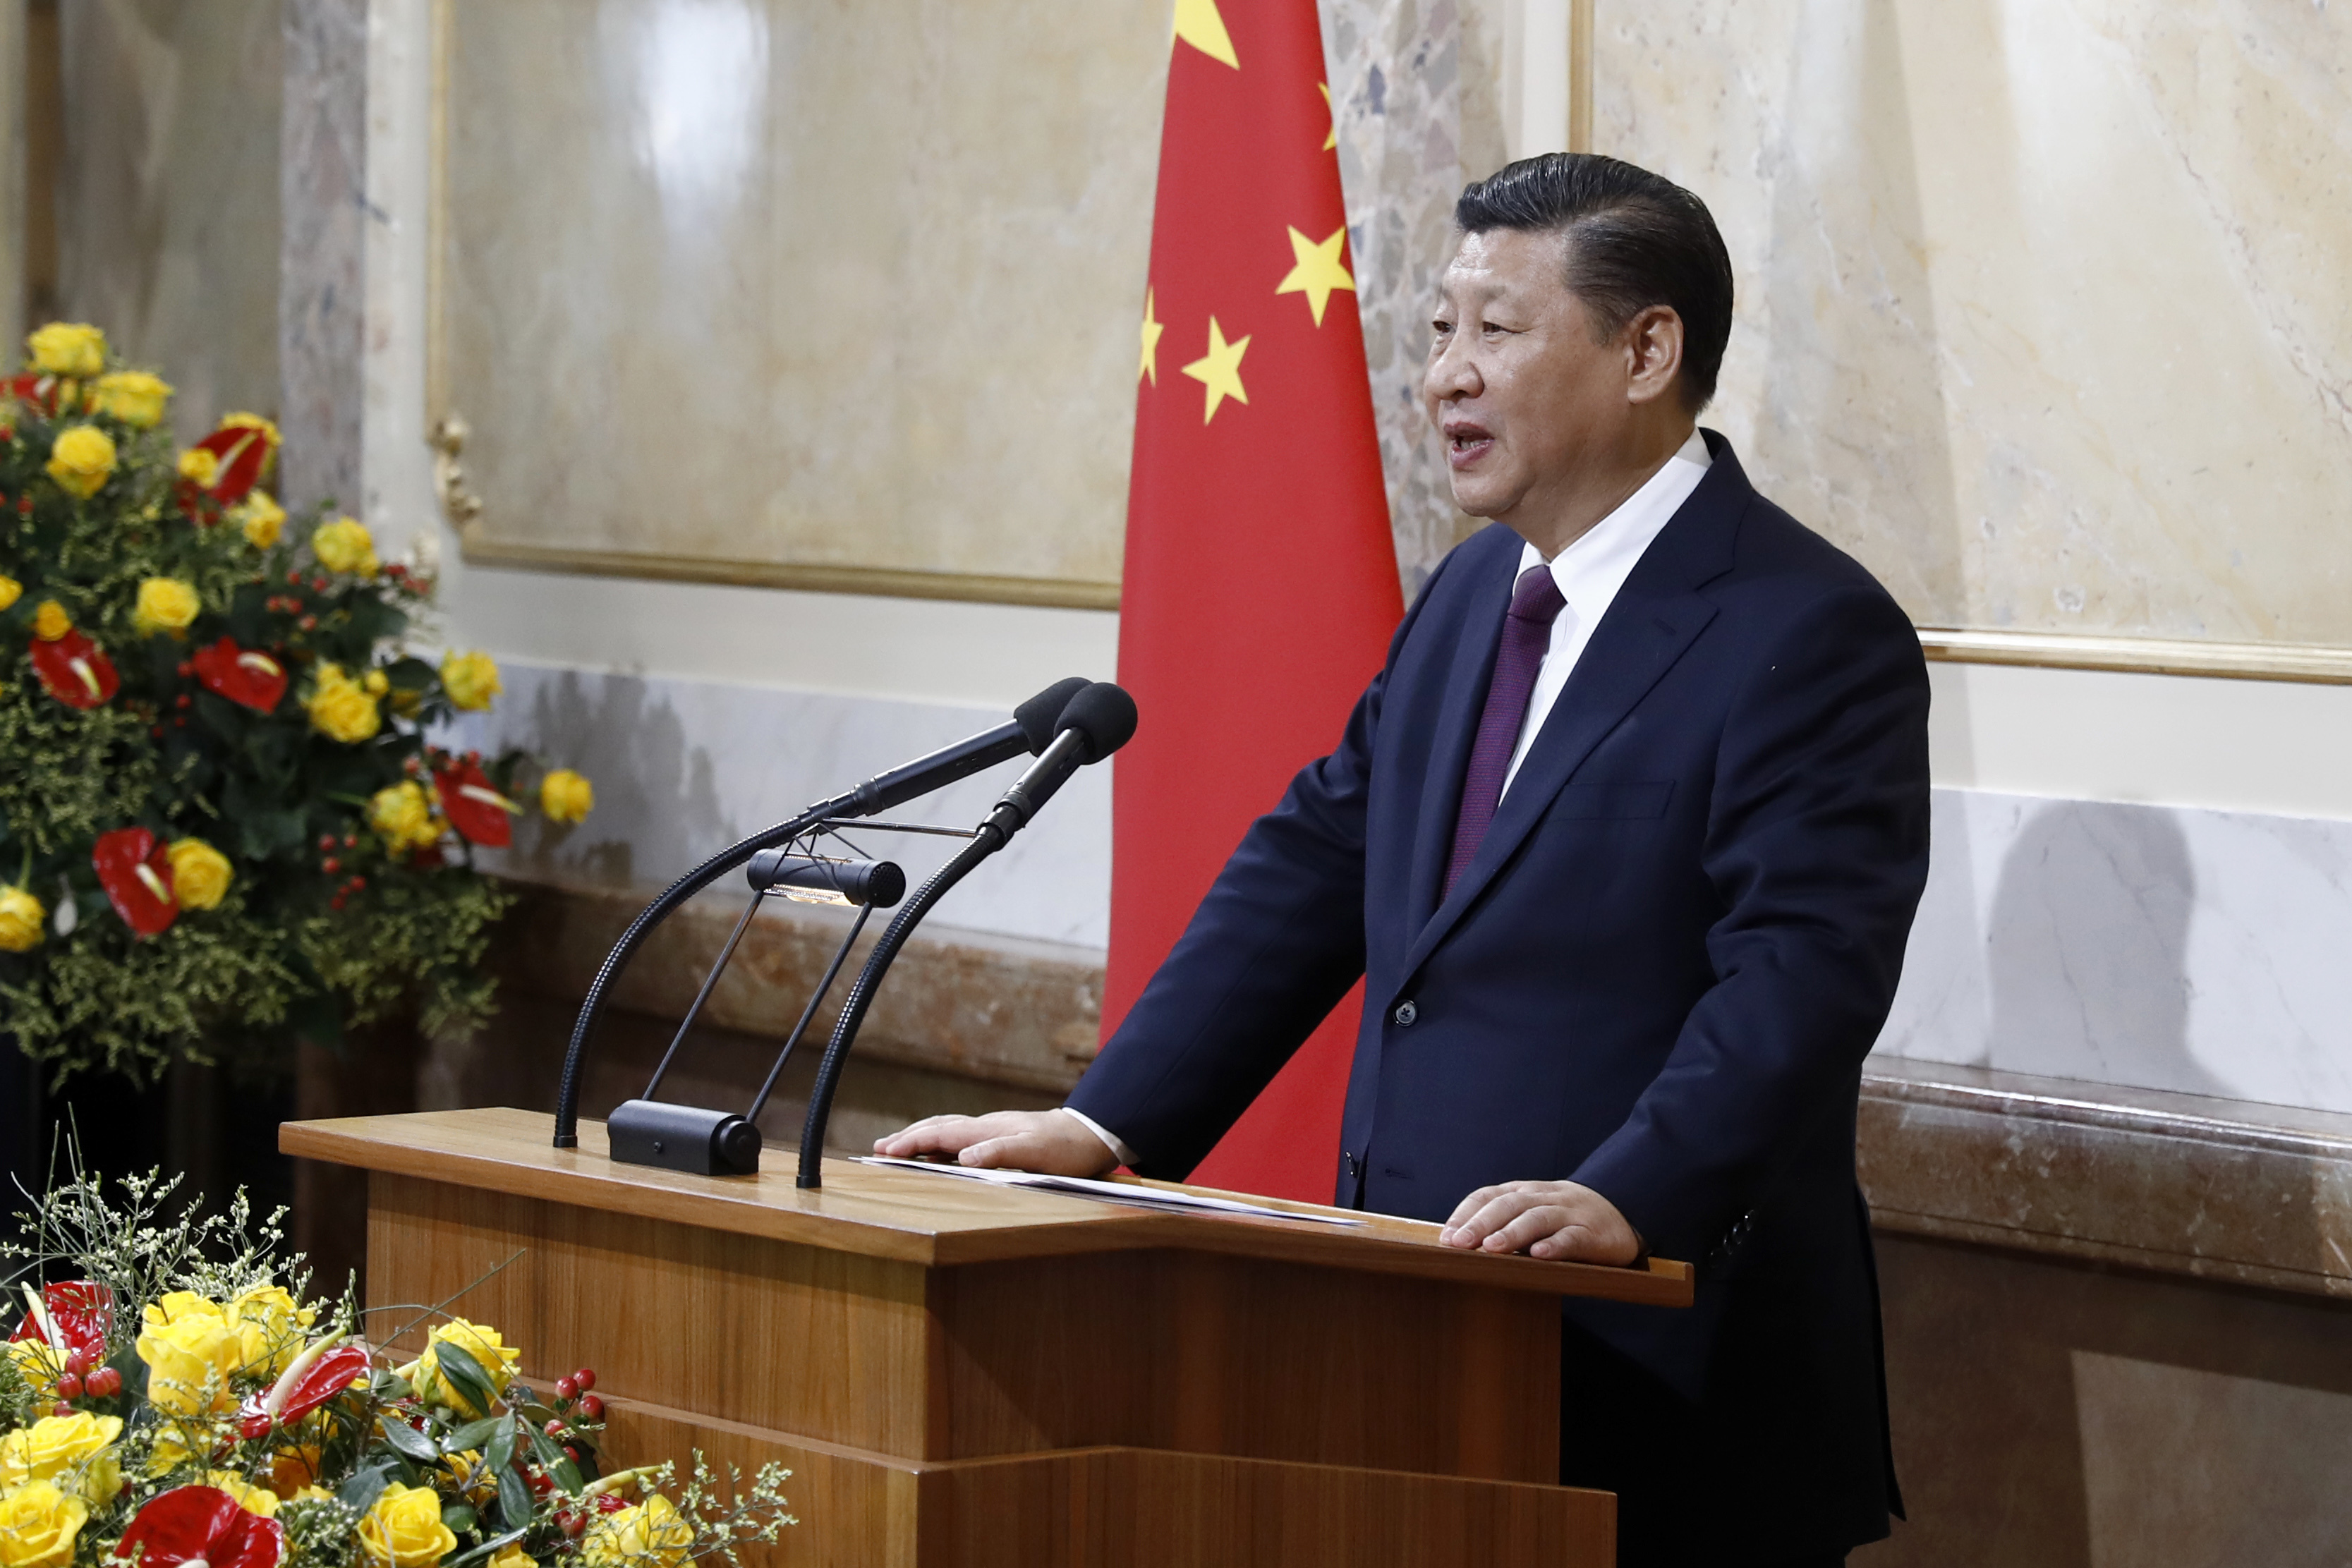 China's President Xi Jinping speaks in the house of parliament during his two days state visit to Switzerland, in Bern, Switzerland, on Sunday, Jan. 15, 2017. (Peter Klaunzer/Pool Photo via AP)